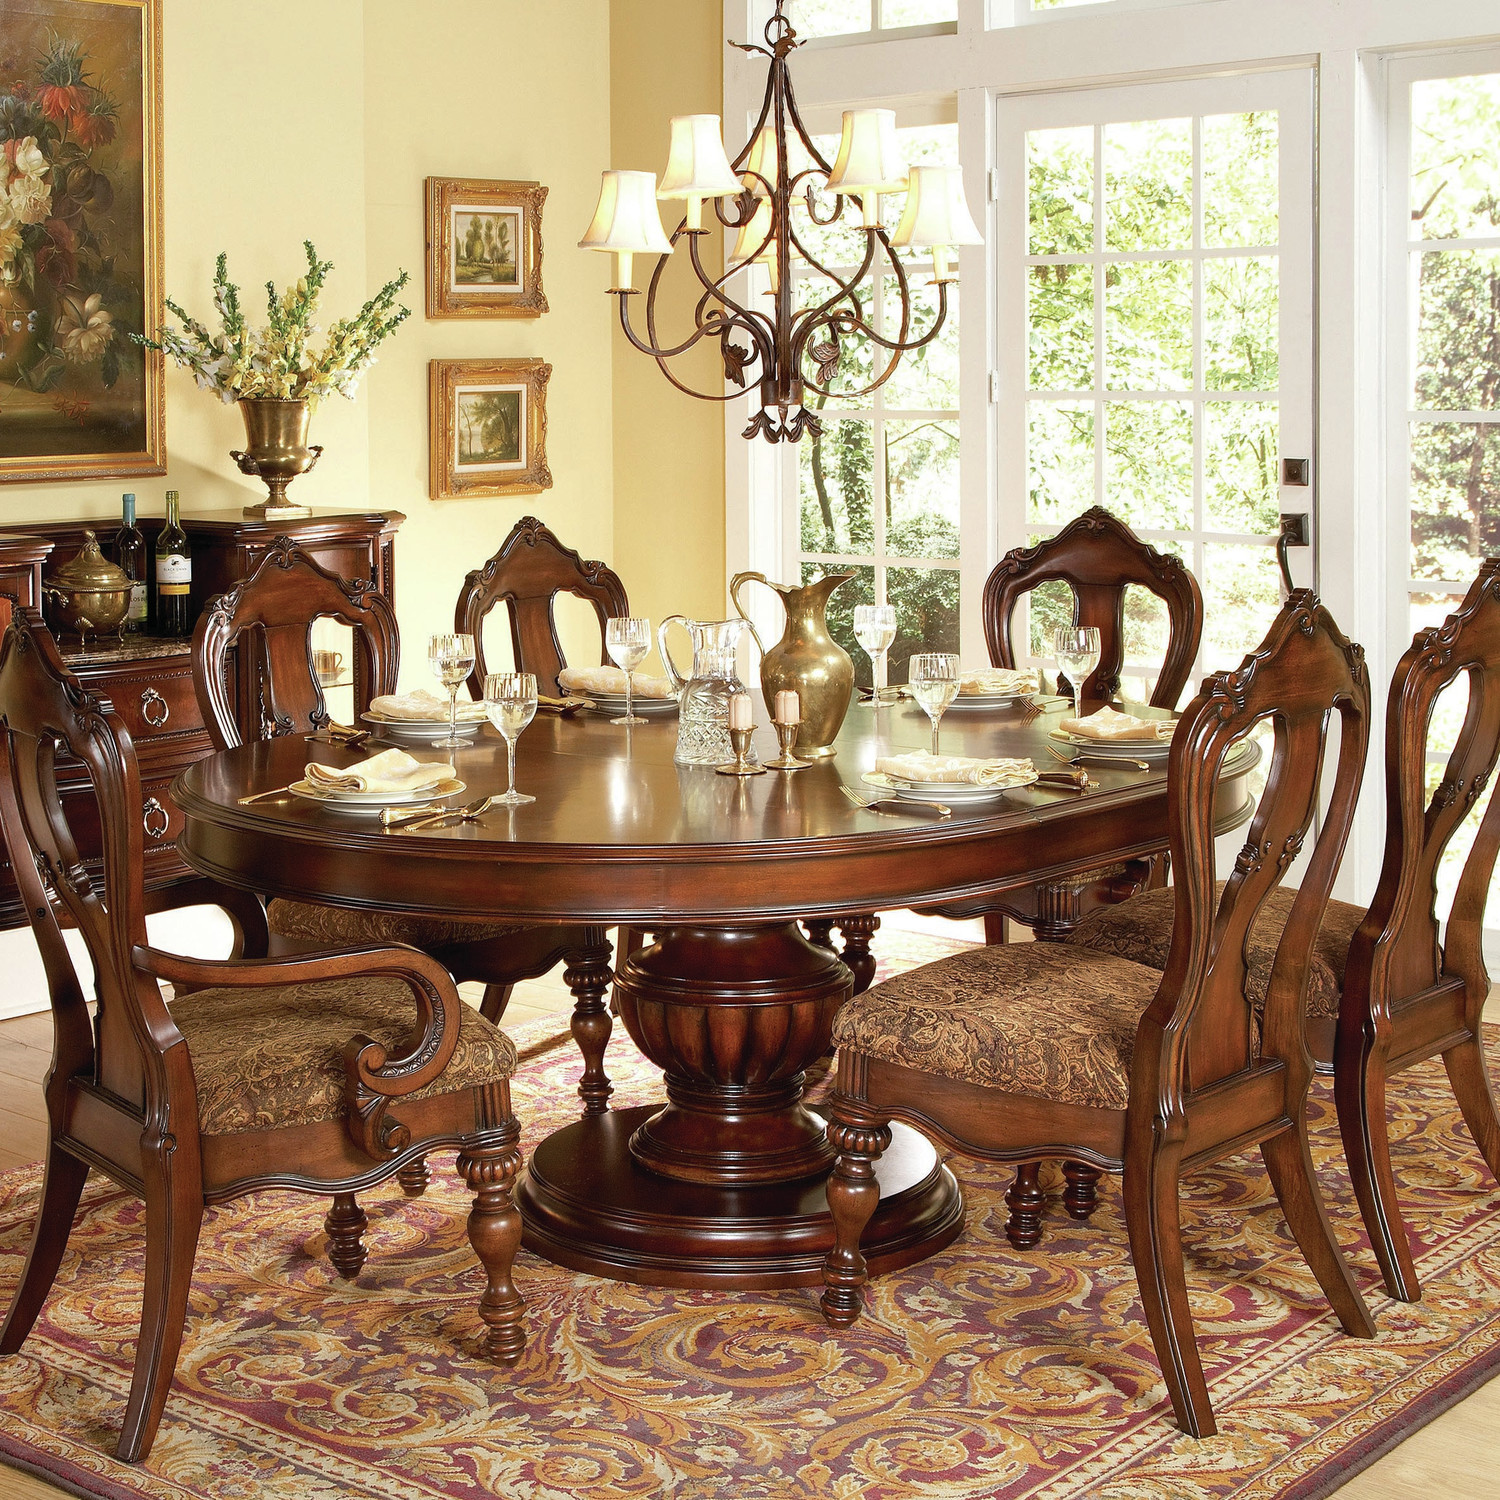 Round Breakfast Table Set: Getting A Round Dining Room Table For 6 By Your Own